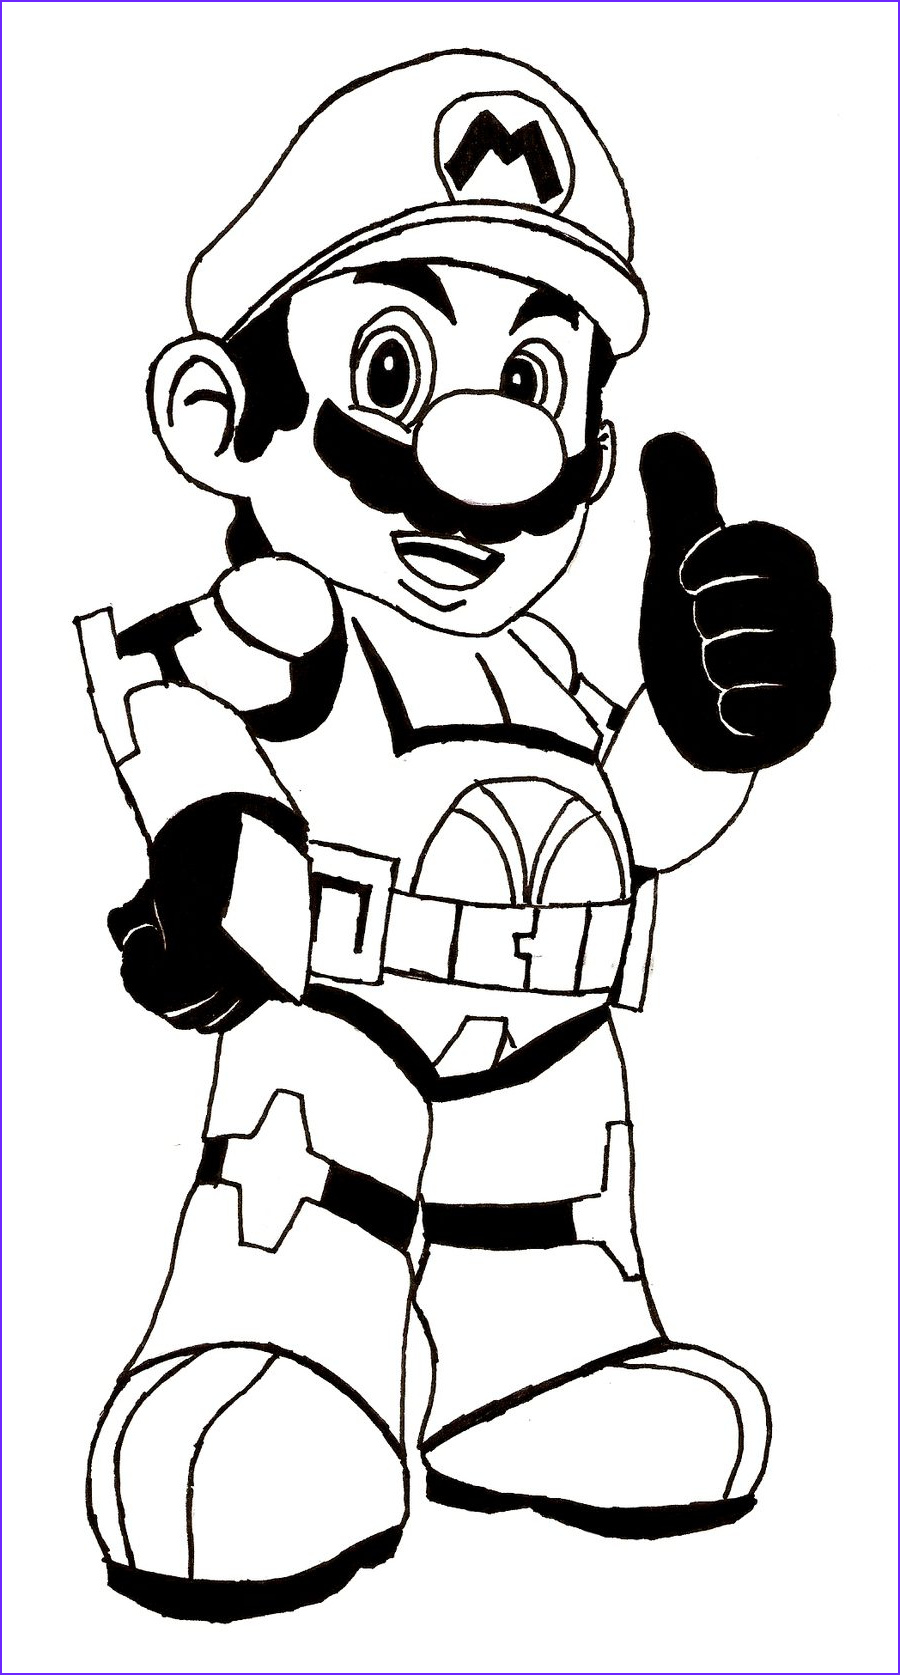 Mairo Coloring Pages Awesome Photos Mario Kart 8 Coloring Pages Coloring Home